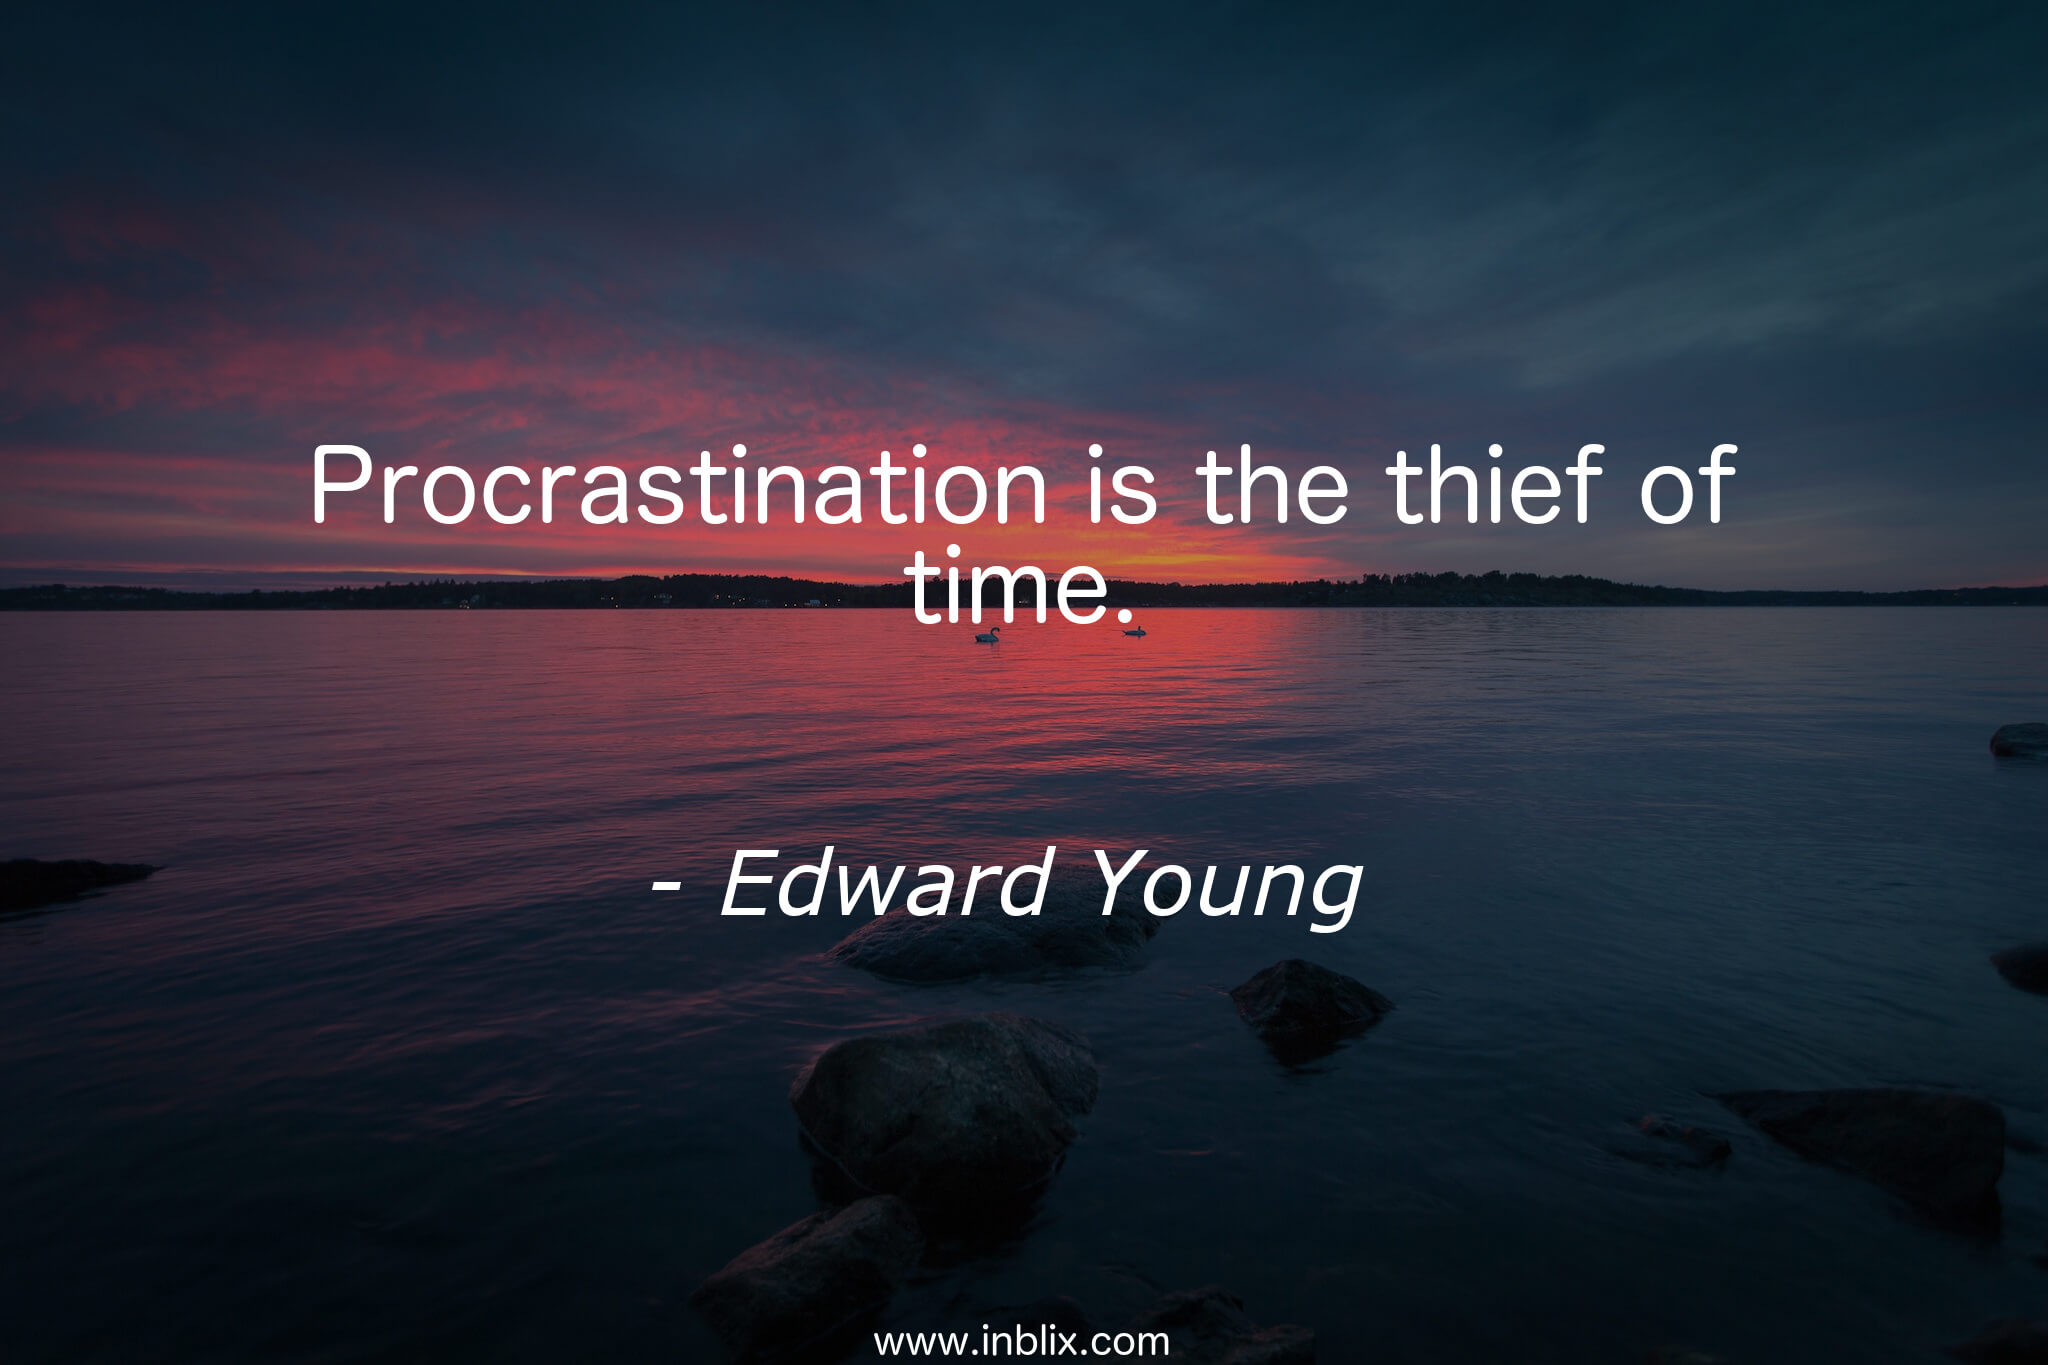 Procrastination is the thief of time essay